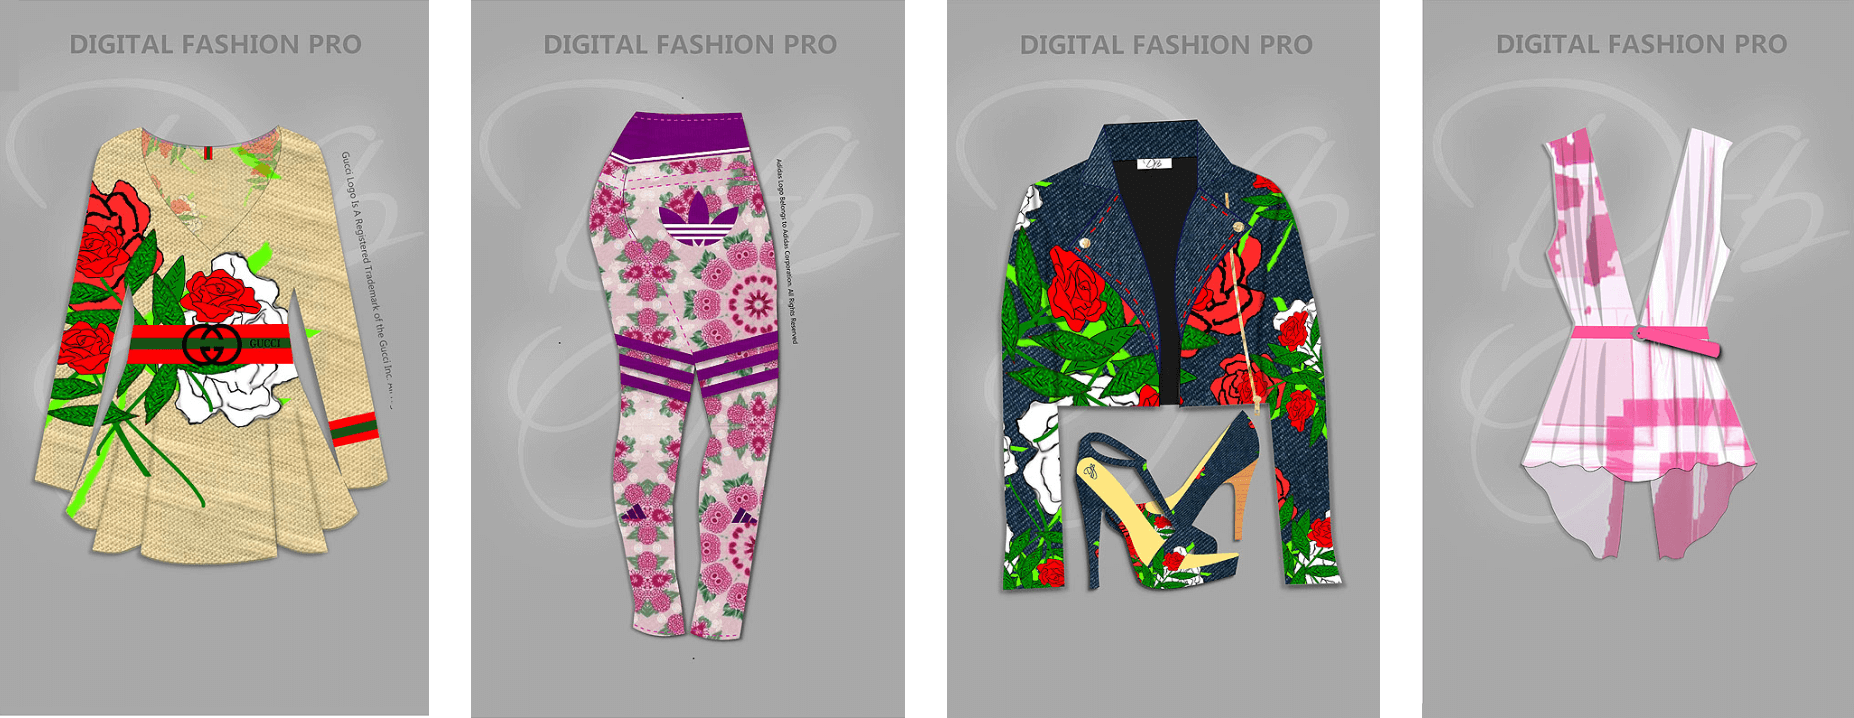 Staritng a clothing line fashion design software - Digital Fashion Pro